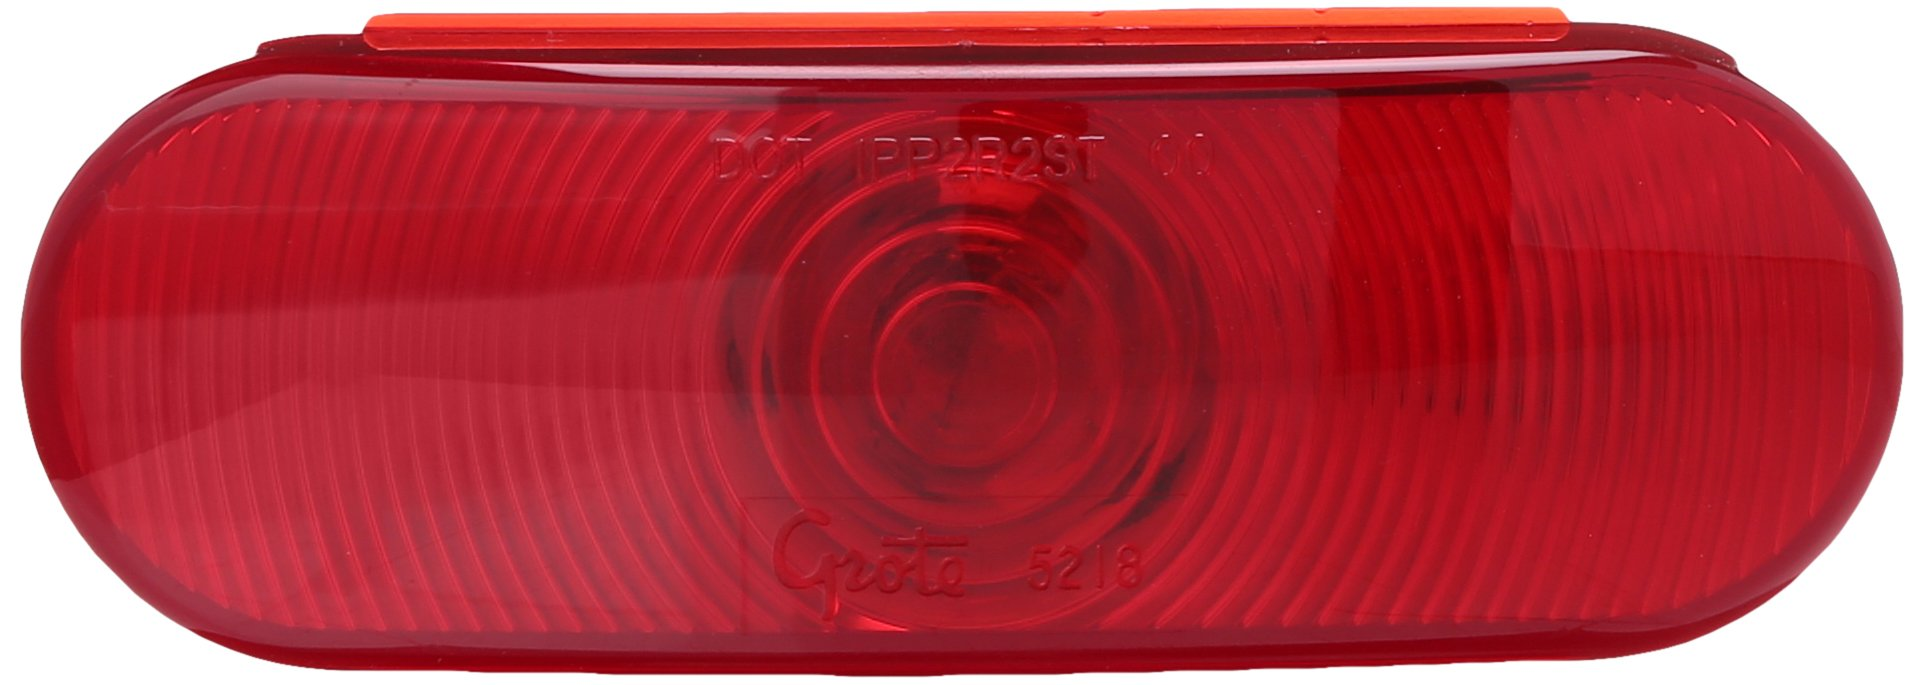 Grote 52182-5 Economy Oval Stop Tail Turn Light